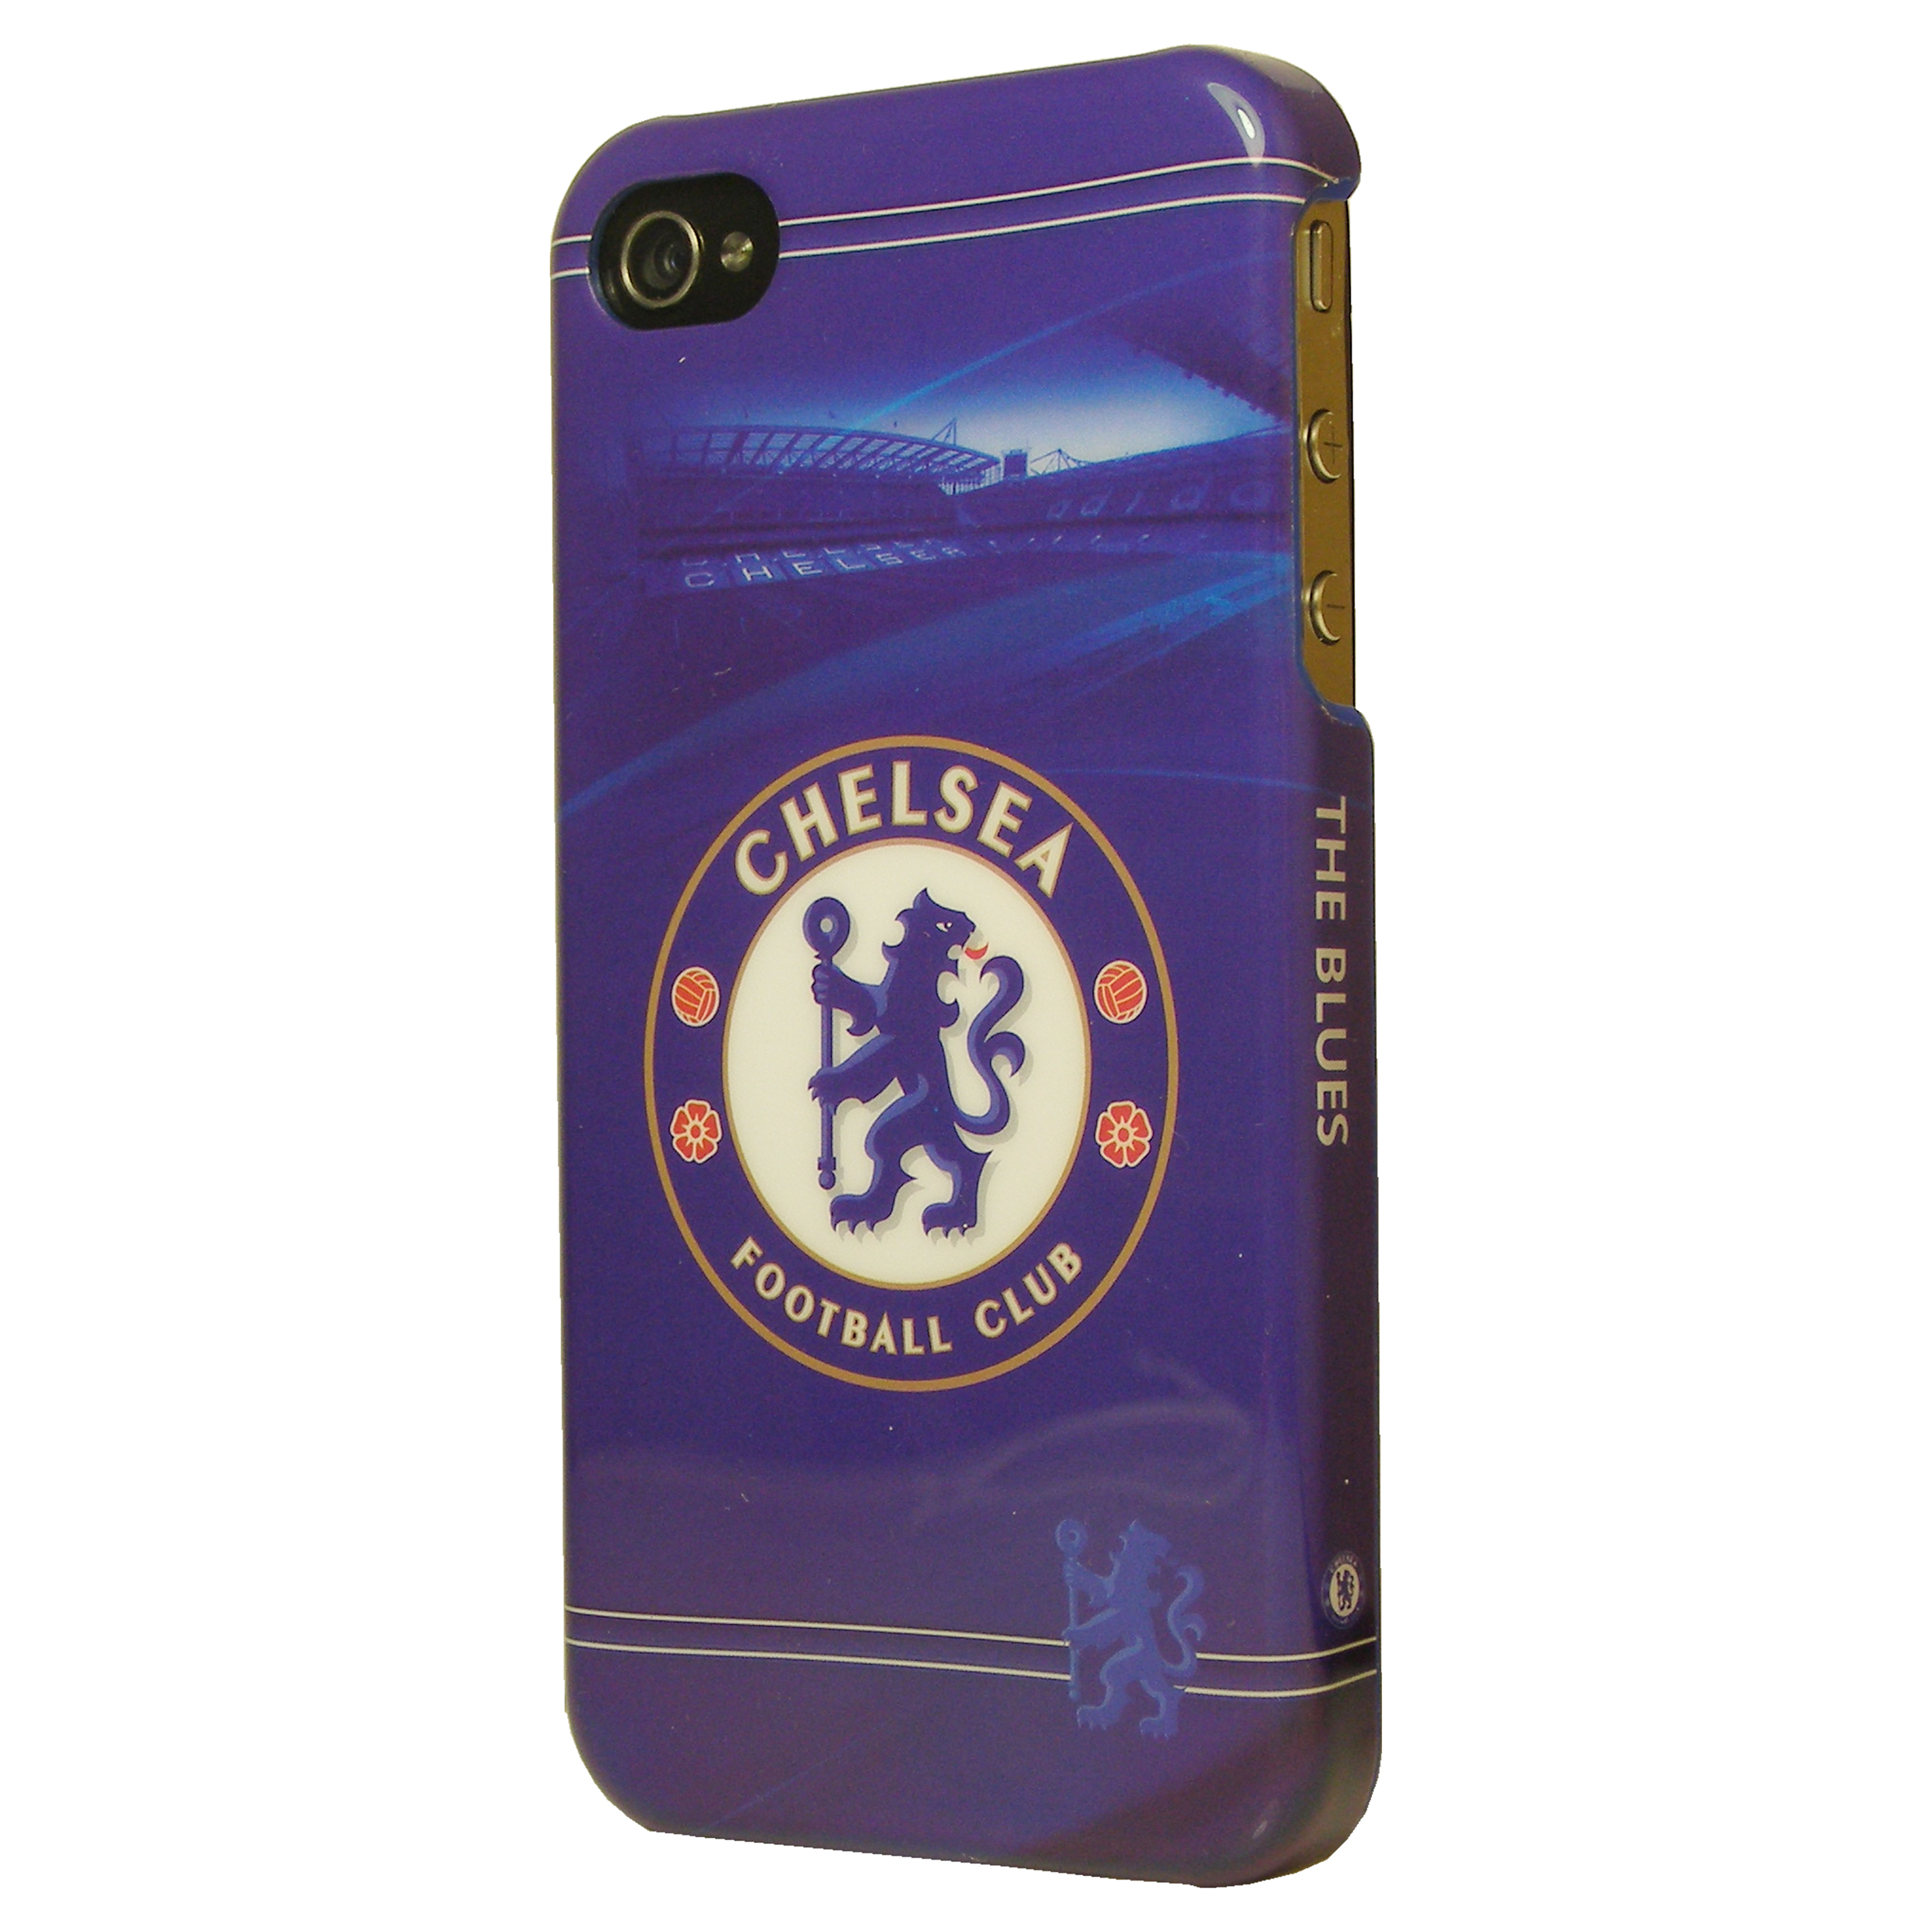 Chelsea FC Iphone 4-4S Hard Case